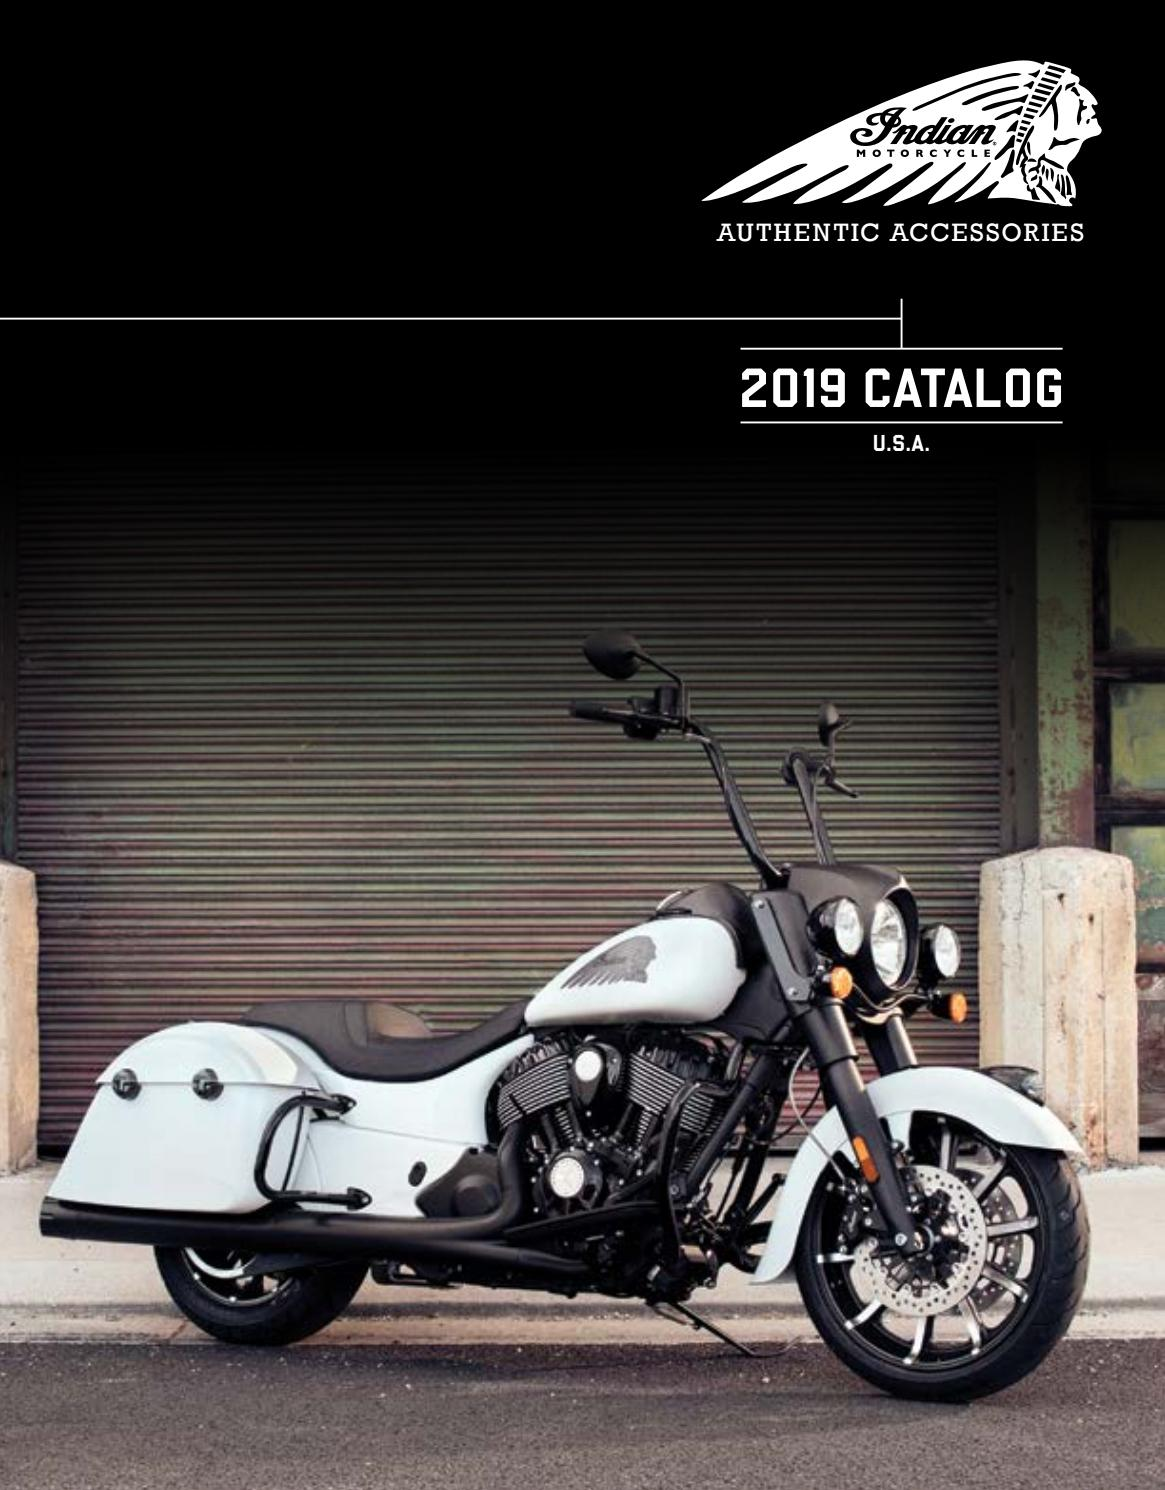 INDIAN MOTORCYCLE BLACK FRINGED LEATHER GRIP WRAPS 2014-2018 CHIEFTAIN CLASSIC Grips Parts & Accessories